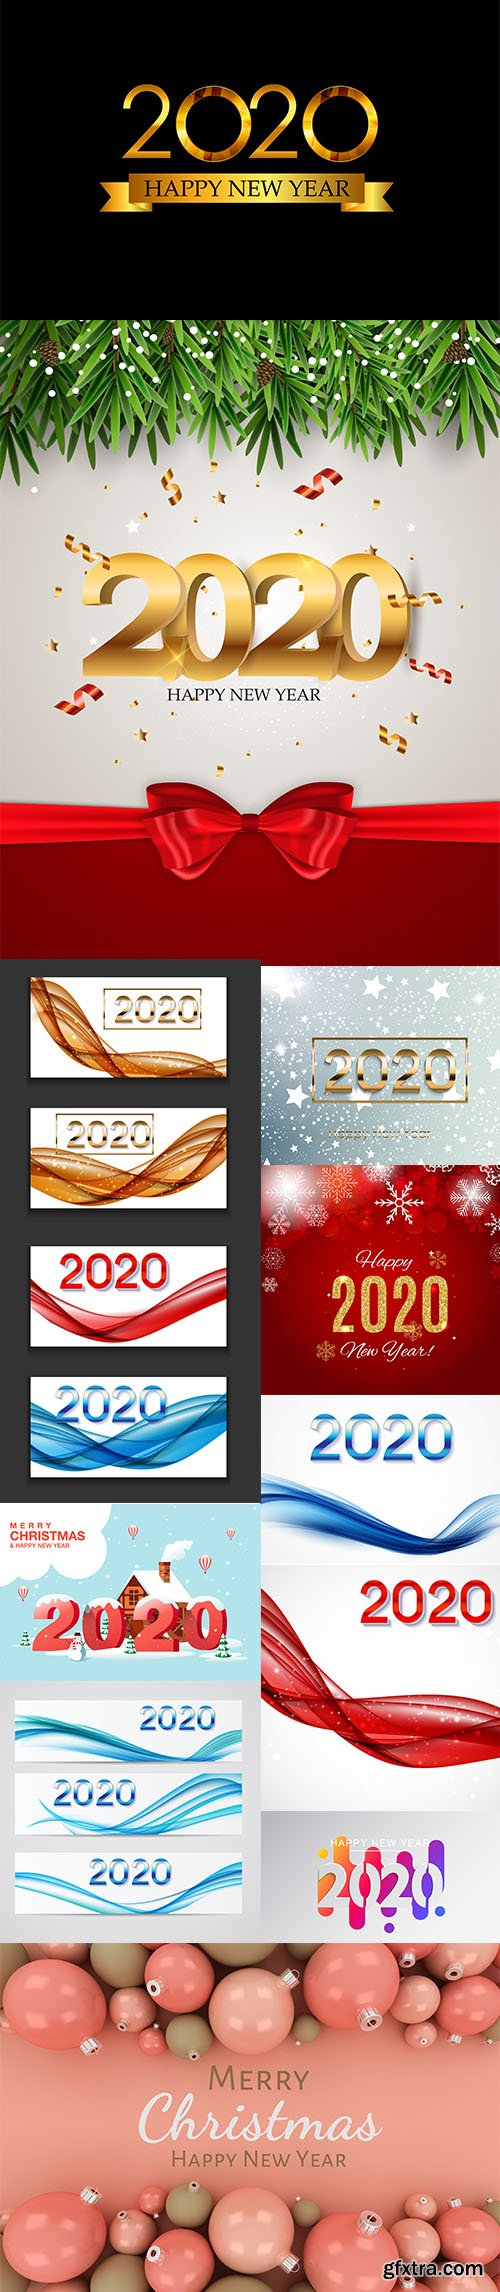 Merry Christmas and New Year 2020 Vector Illustrations Pack Vol 3